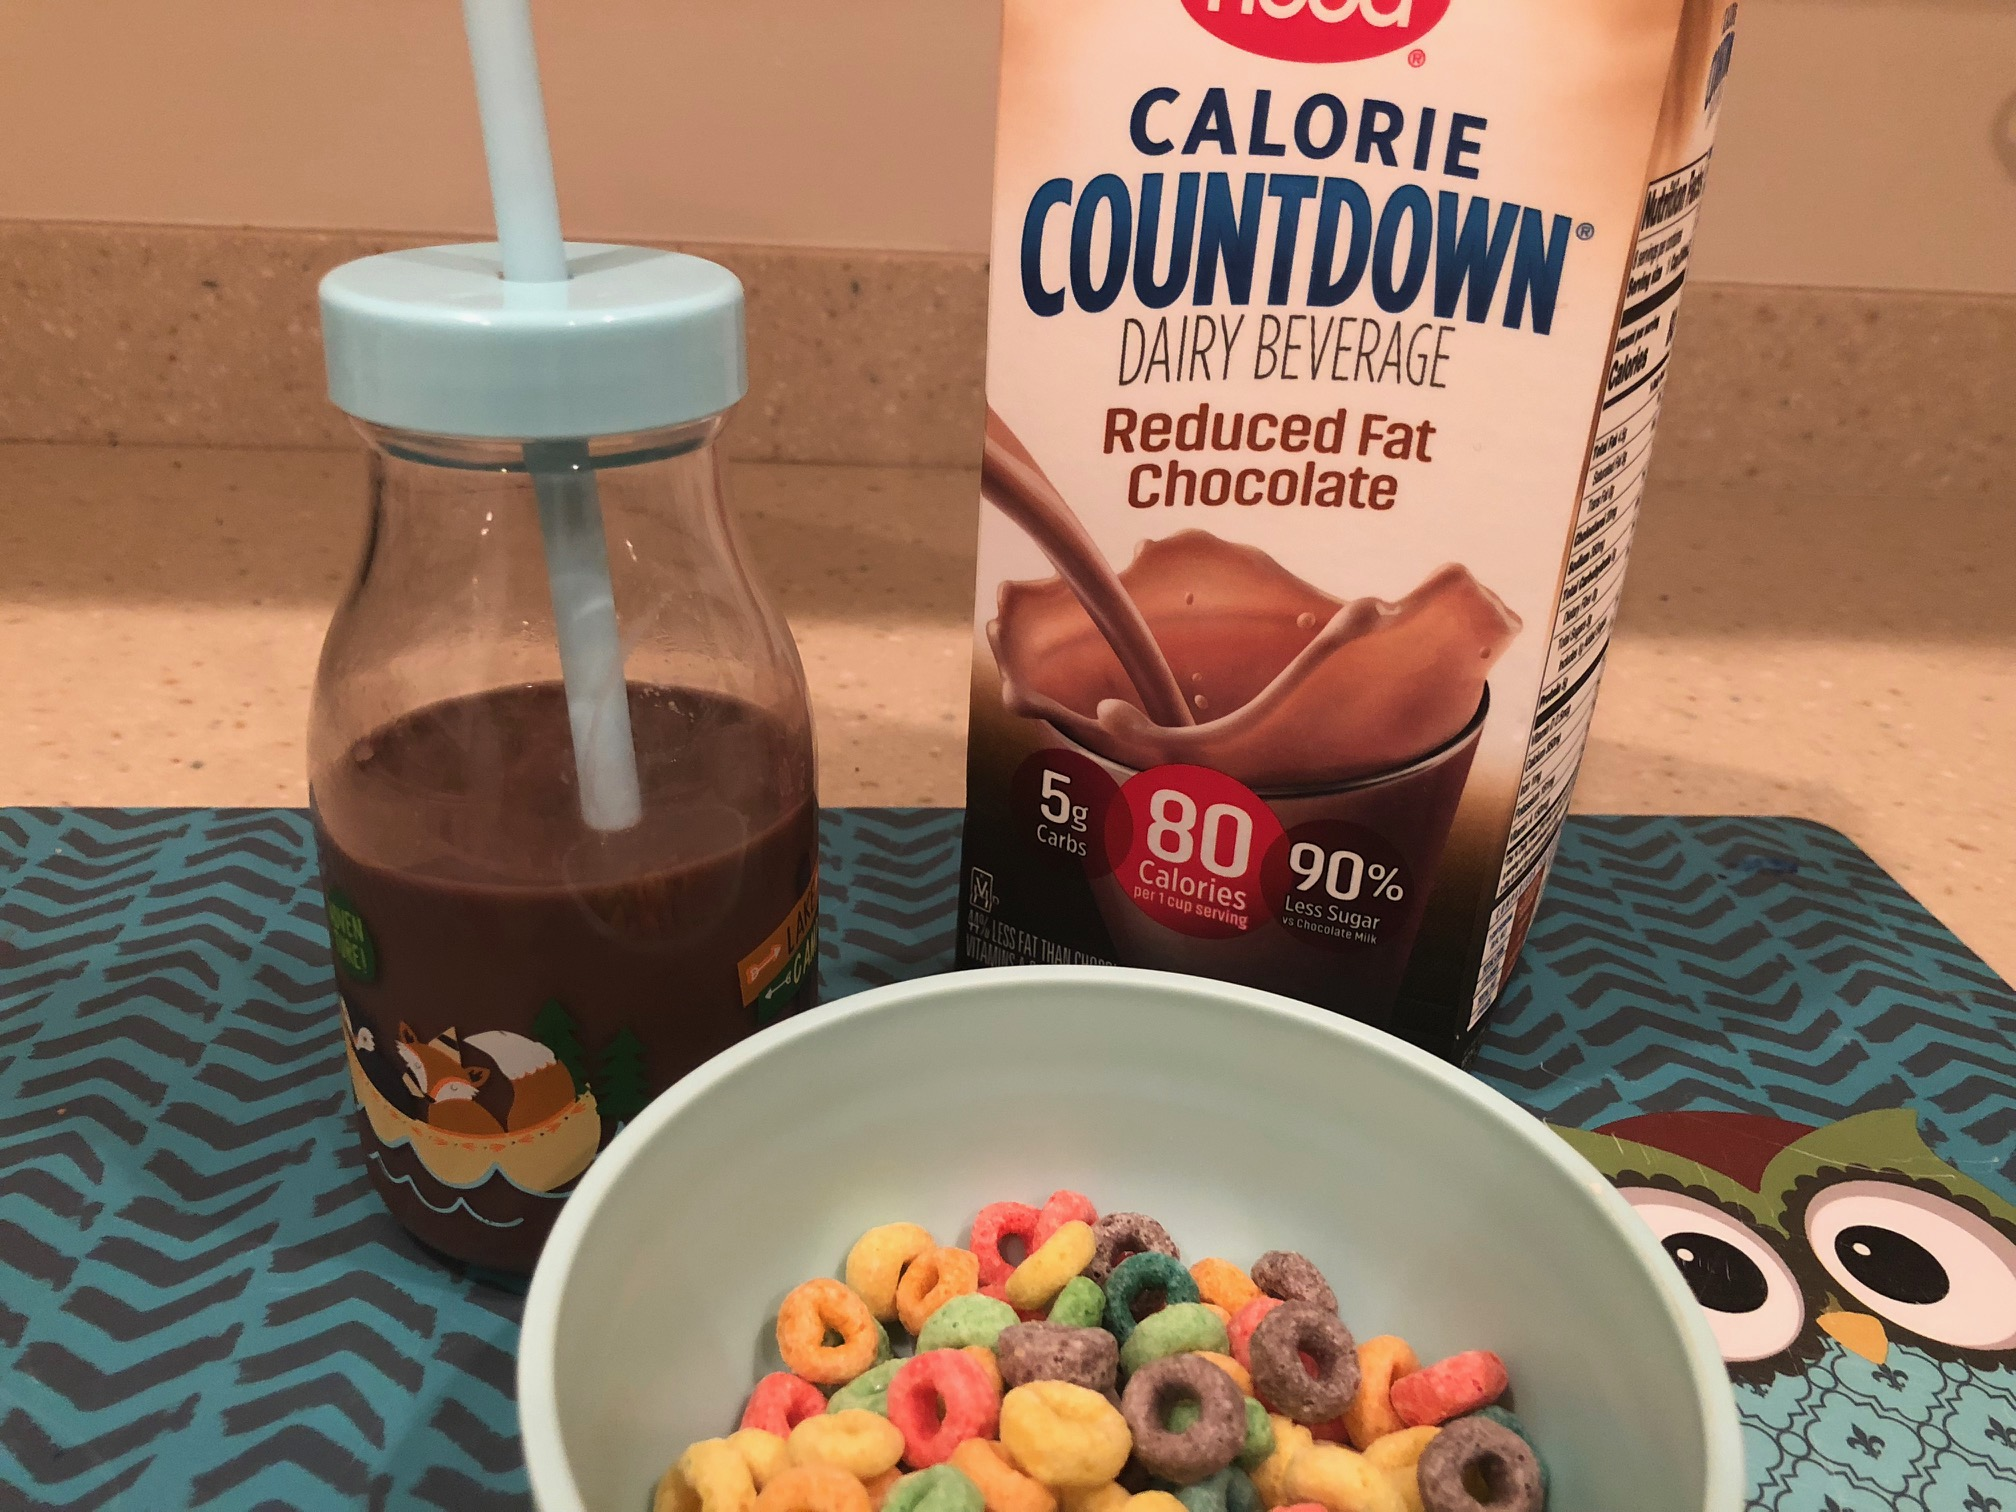 Milk substitute | Dairy beverage to replace milk with | Hood Calorie Countdown | Acupful.com | Family Lifestyle blogger Mandy Carter| healthy milk for kids | Hood Calorie Countdown